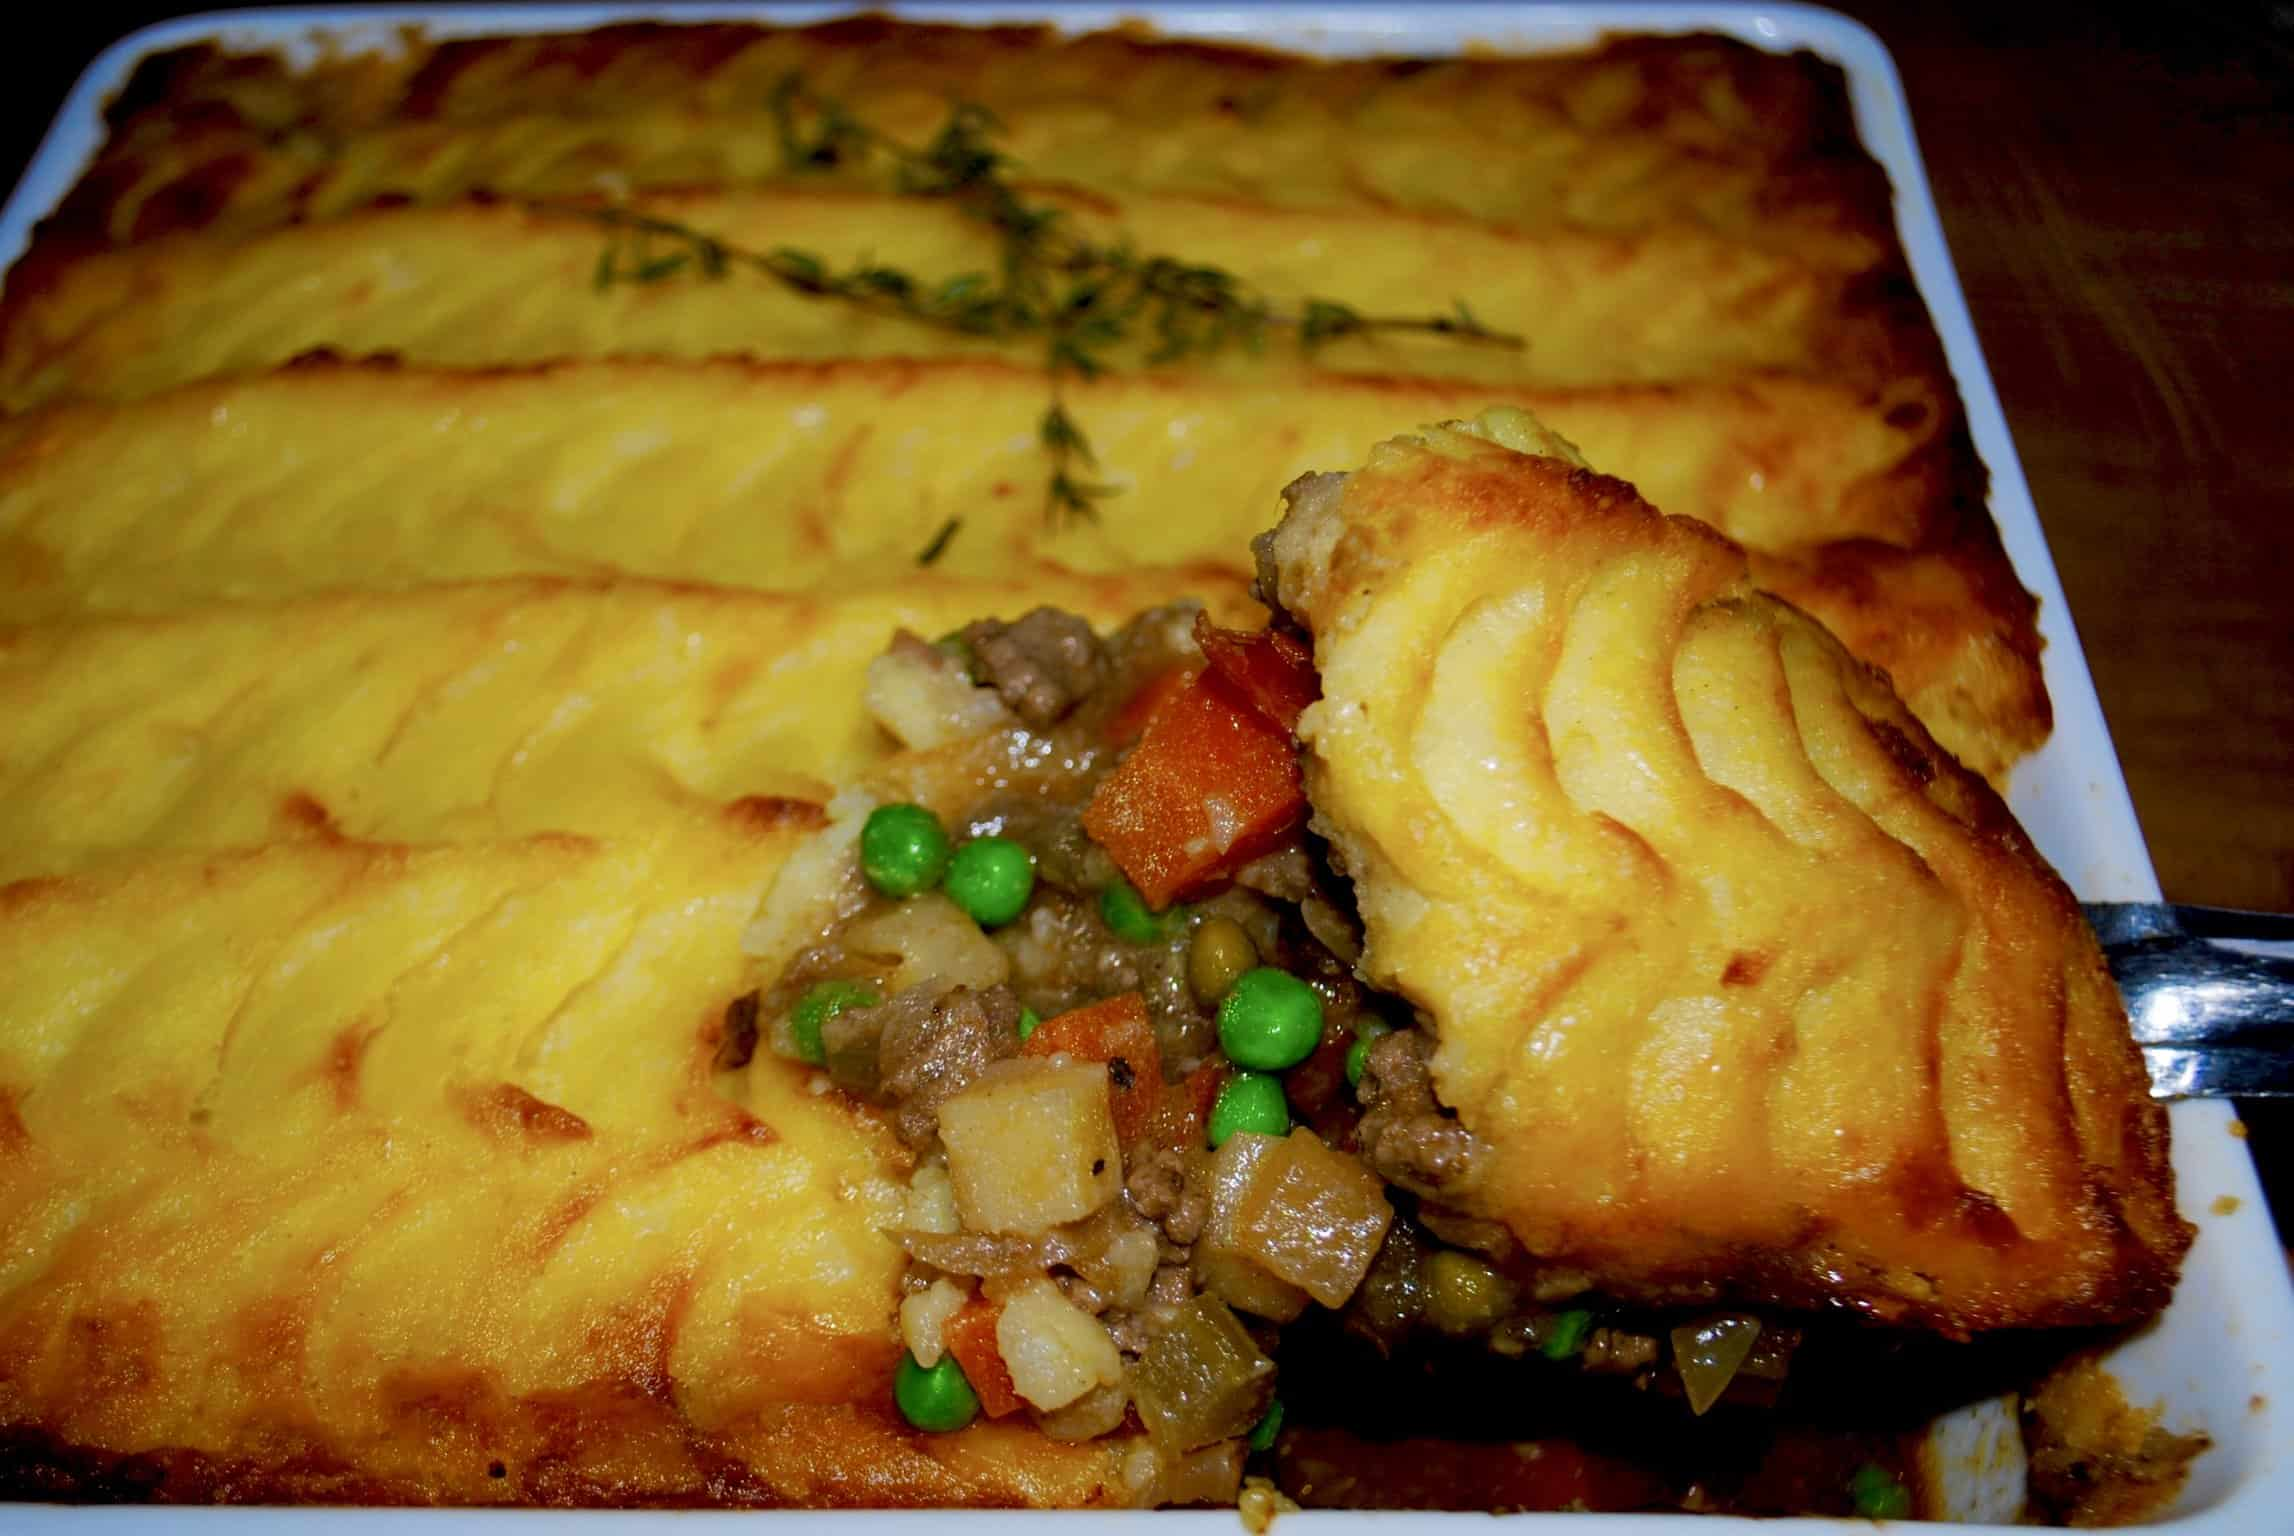 shepherds pie - with a large serve of pie on metal spoon